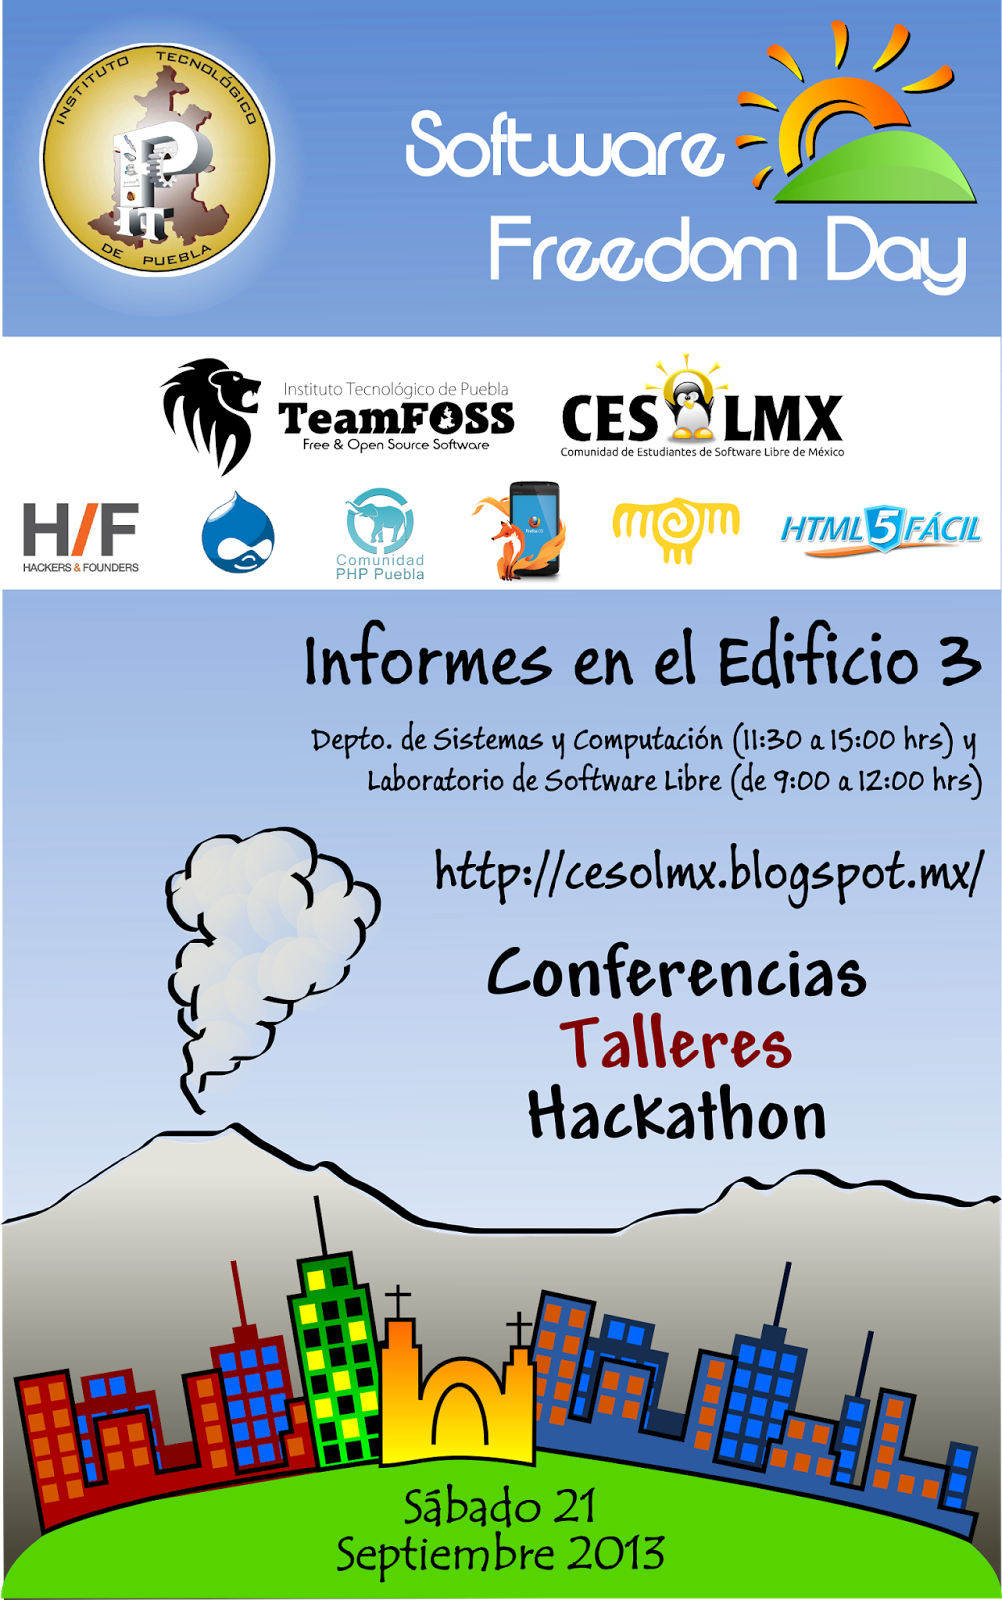 ¡Software Freedom Day ya viene!